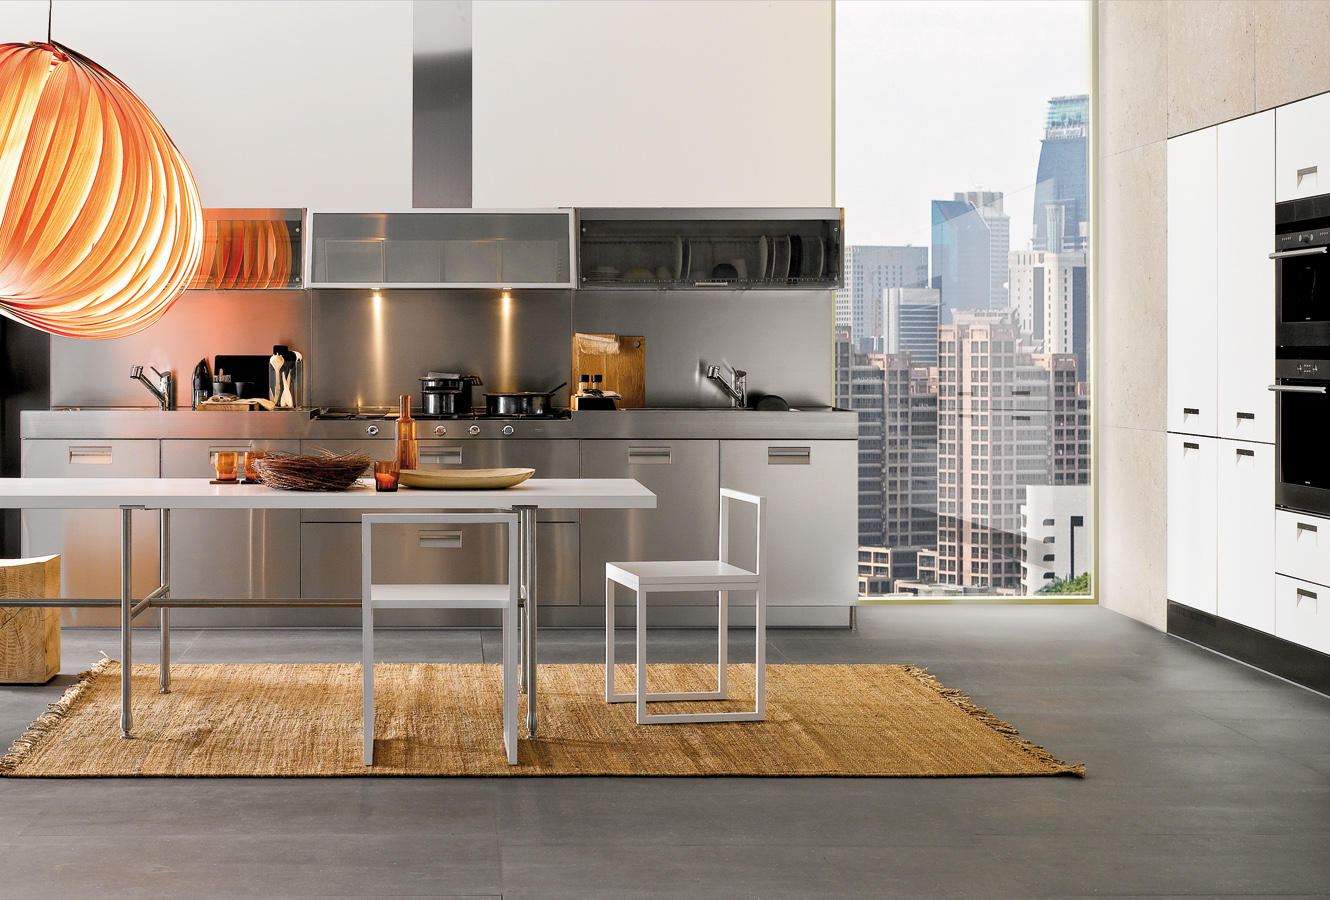 Http Www Home Designing Com 2013 08 Modern Italian Kitchen Design From Arclinea Stainless Steel Kitchen 16